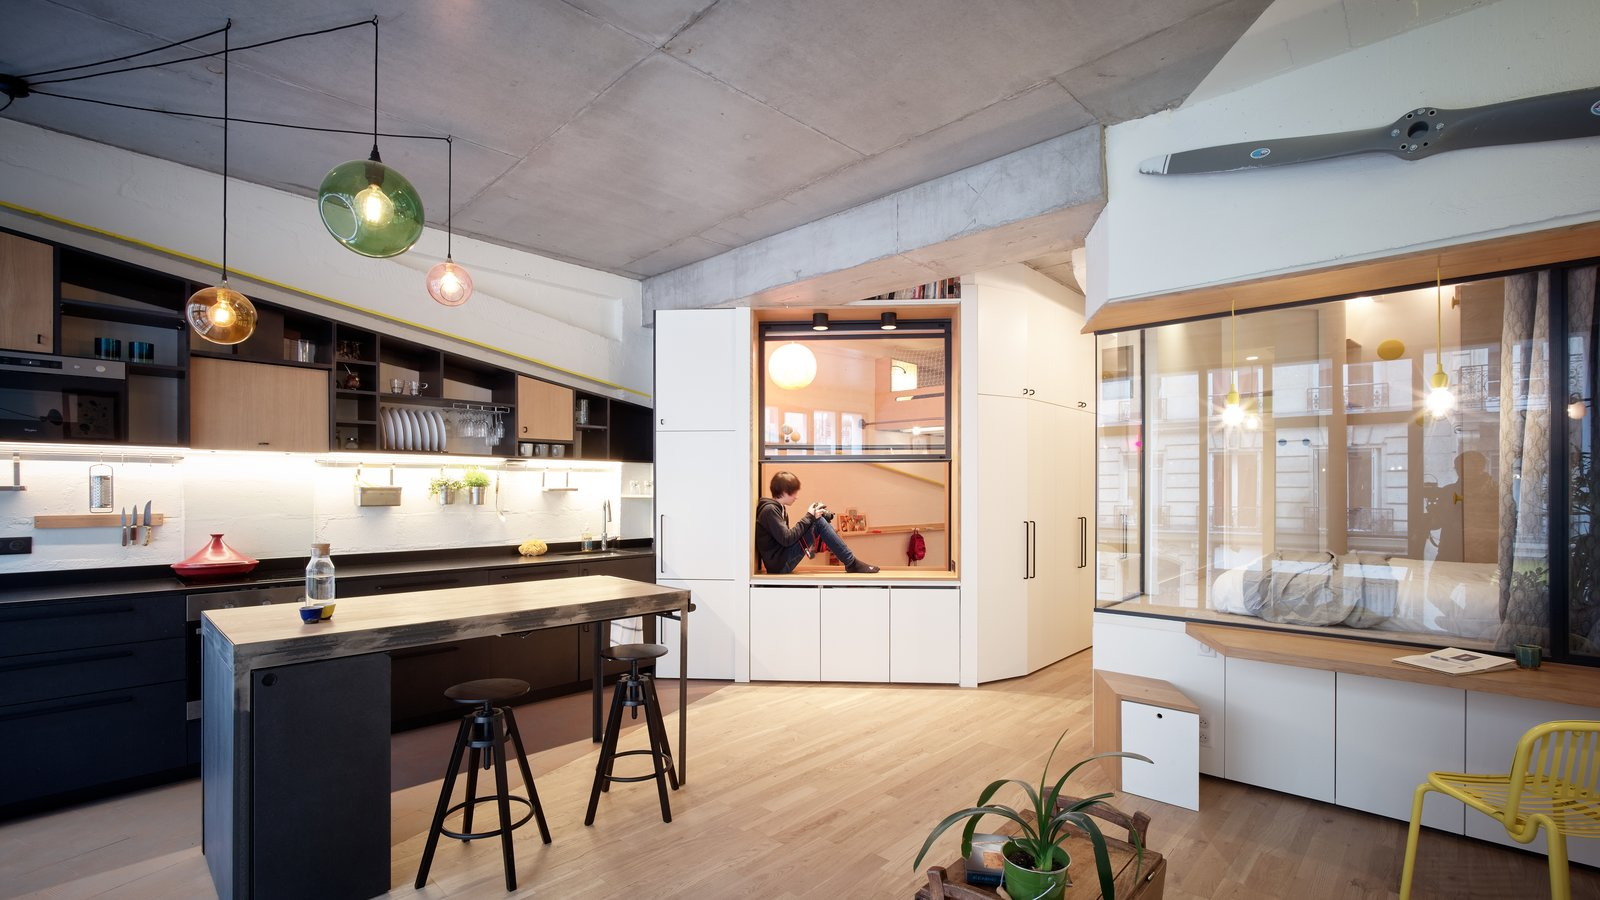 This Compact Home in Paris Has Nearly 70 Concealed Closets